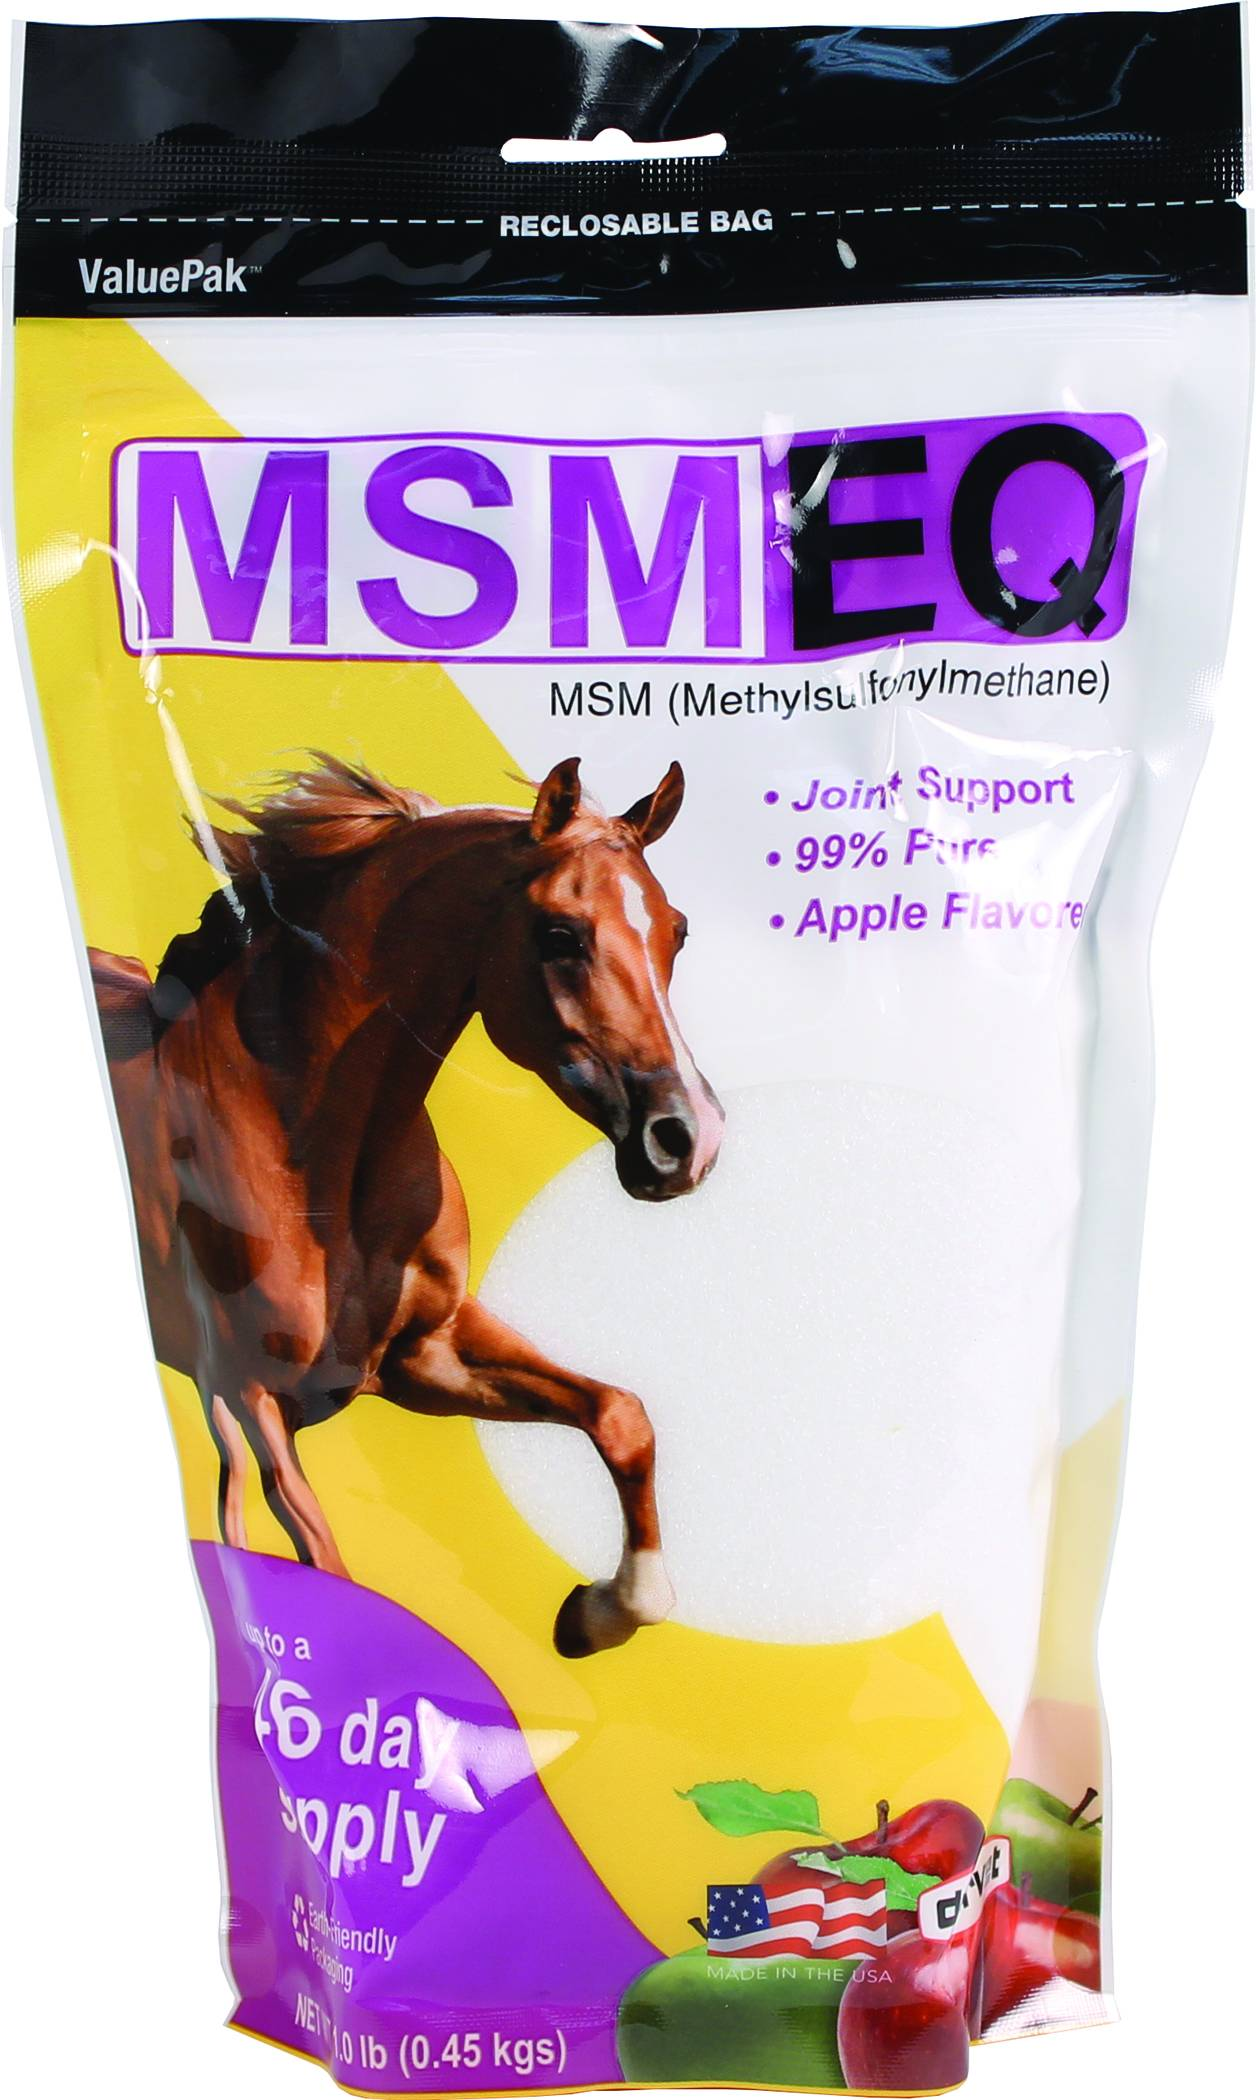 Msm Eq For Equine